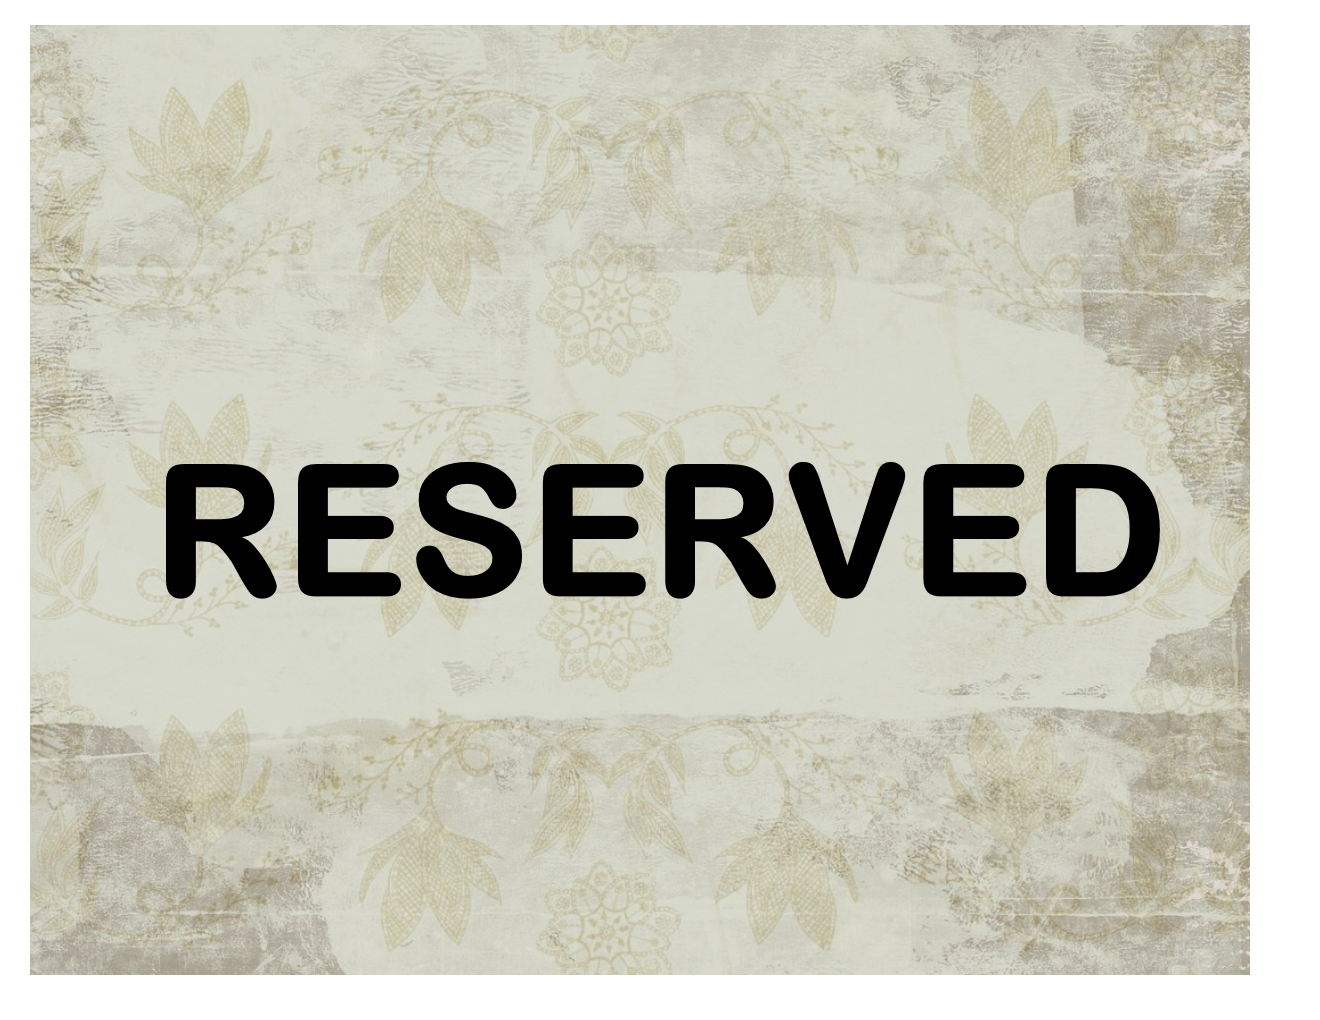 Reserved sign for Reserved seating signs template